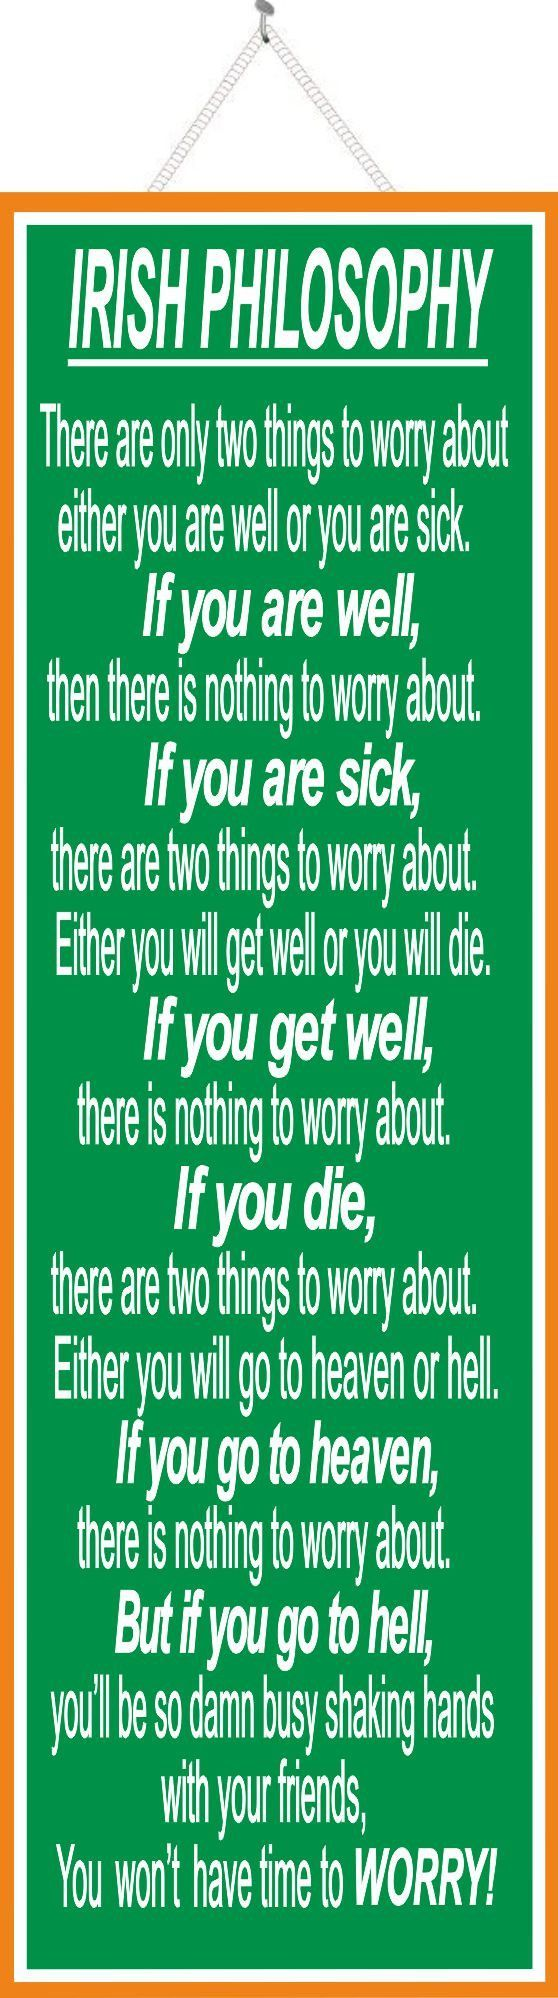 a595ebacb45c331035cc126c596a701b irish philosophy quote sign with green background, white text and